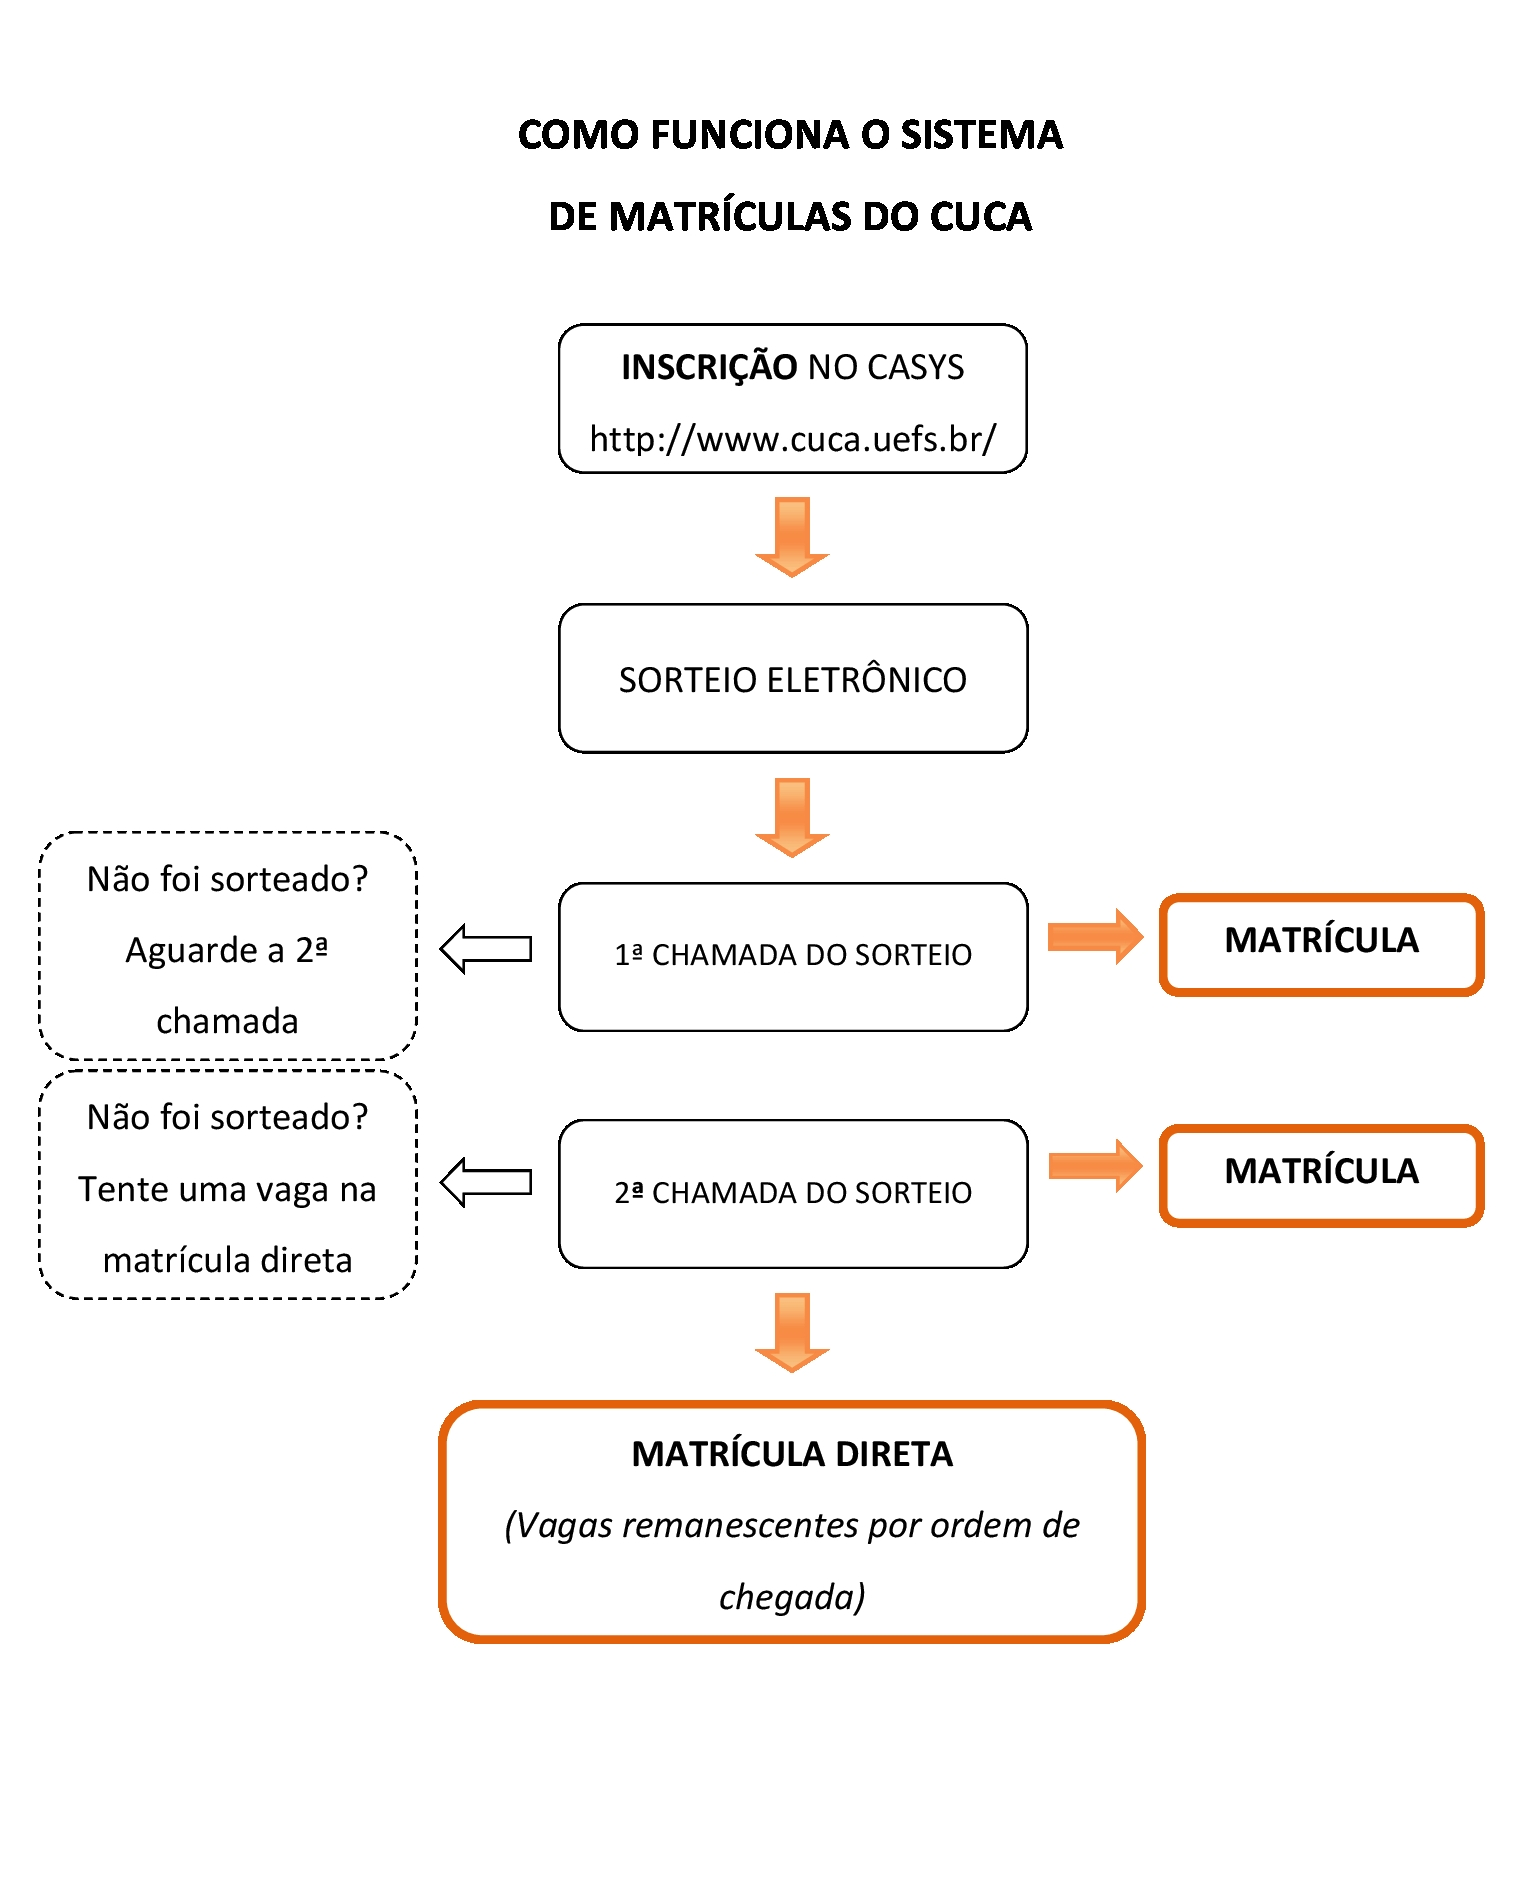 COMO-FUNCIONA-A-MATRICULA-DO-CUCA